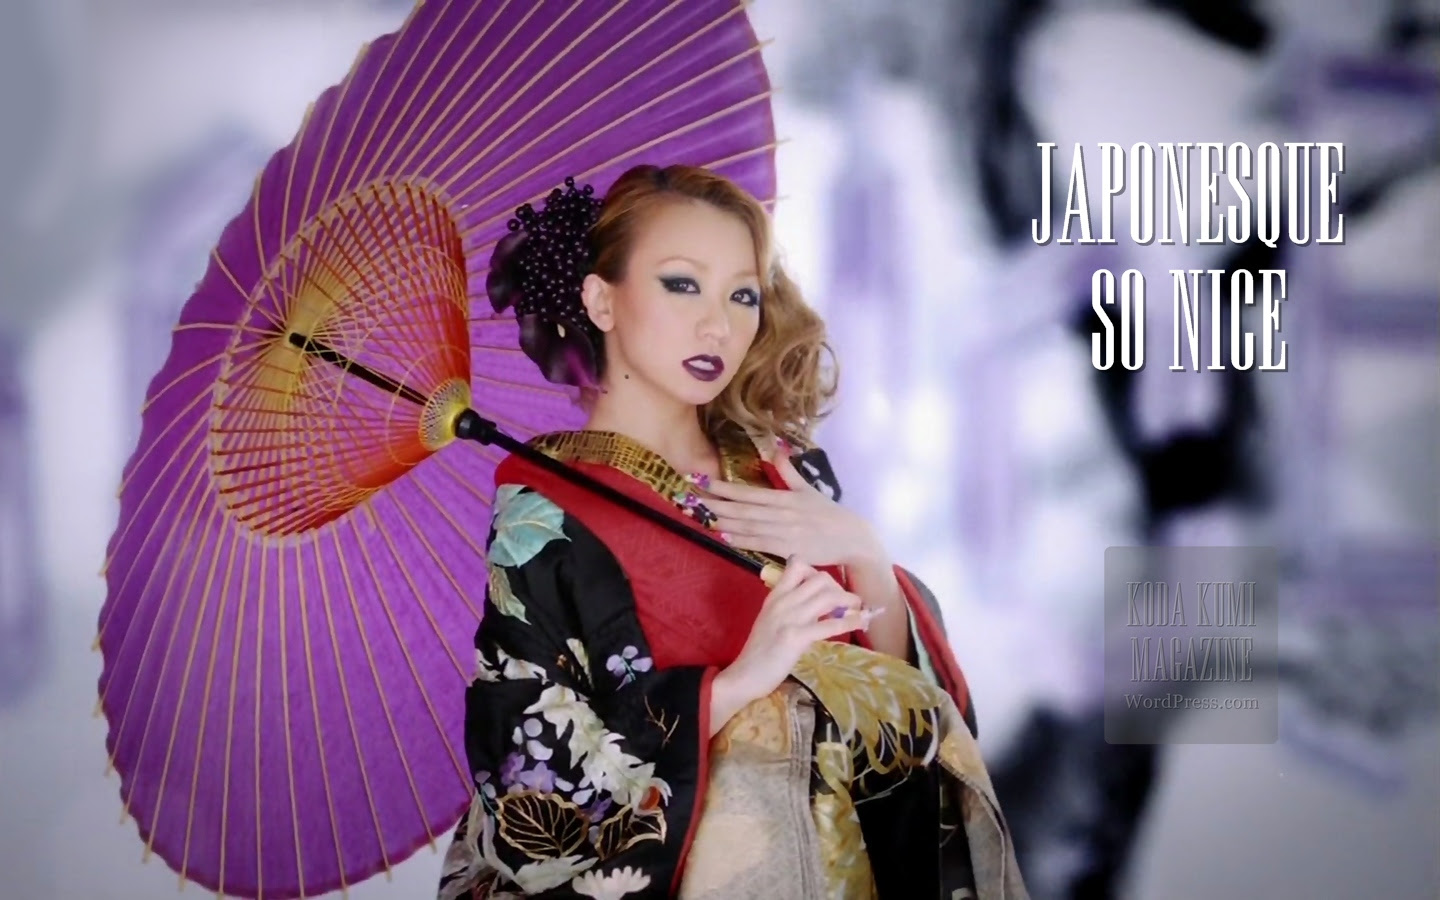 Japonesque Wallpapers And Songs 倖田來未japonesque